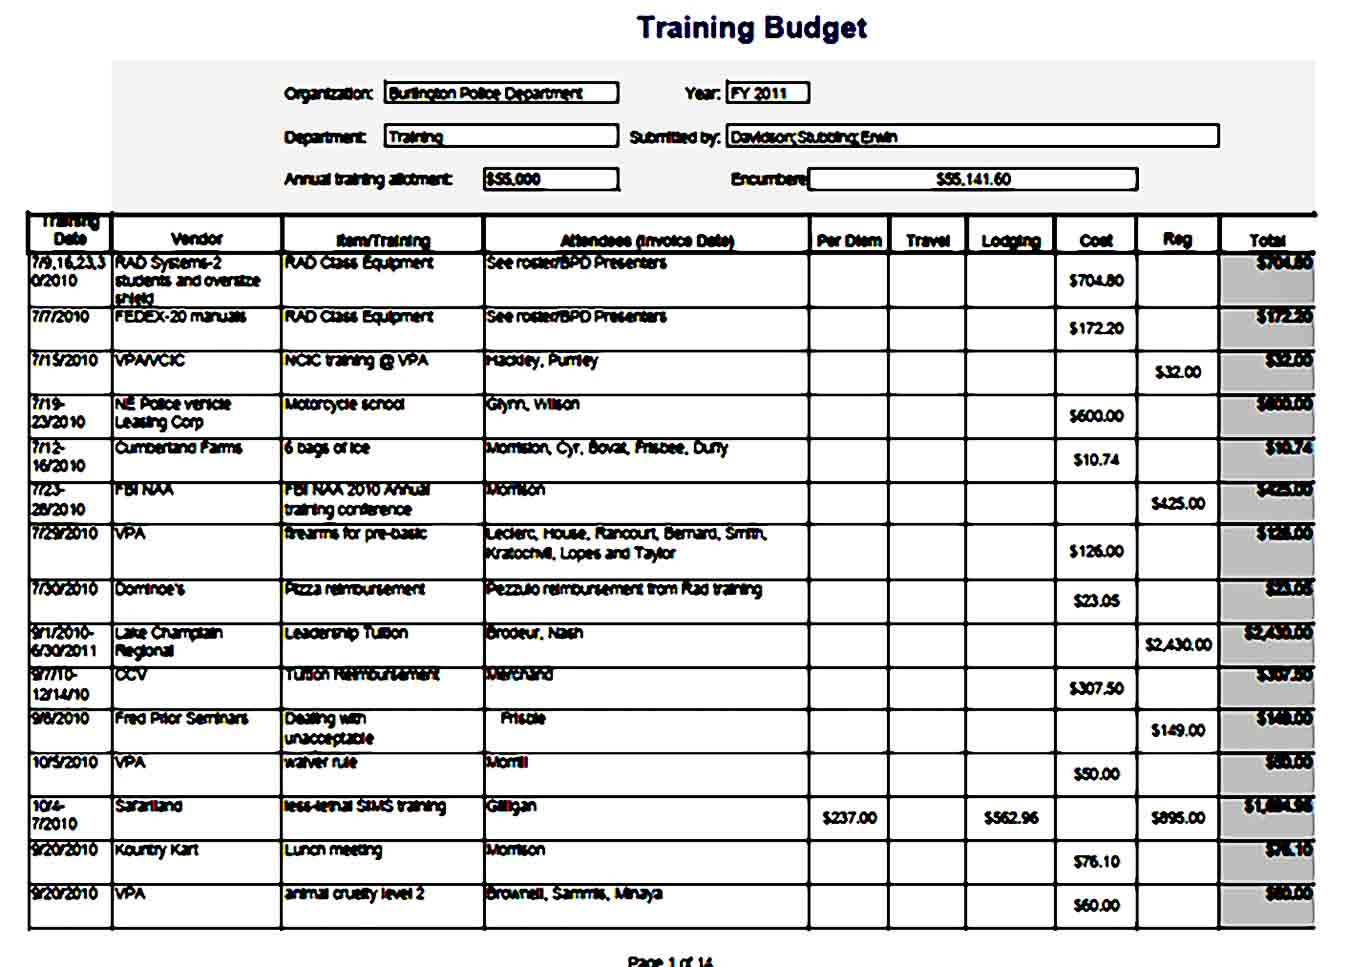 Annual Training Budget Template